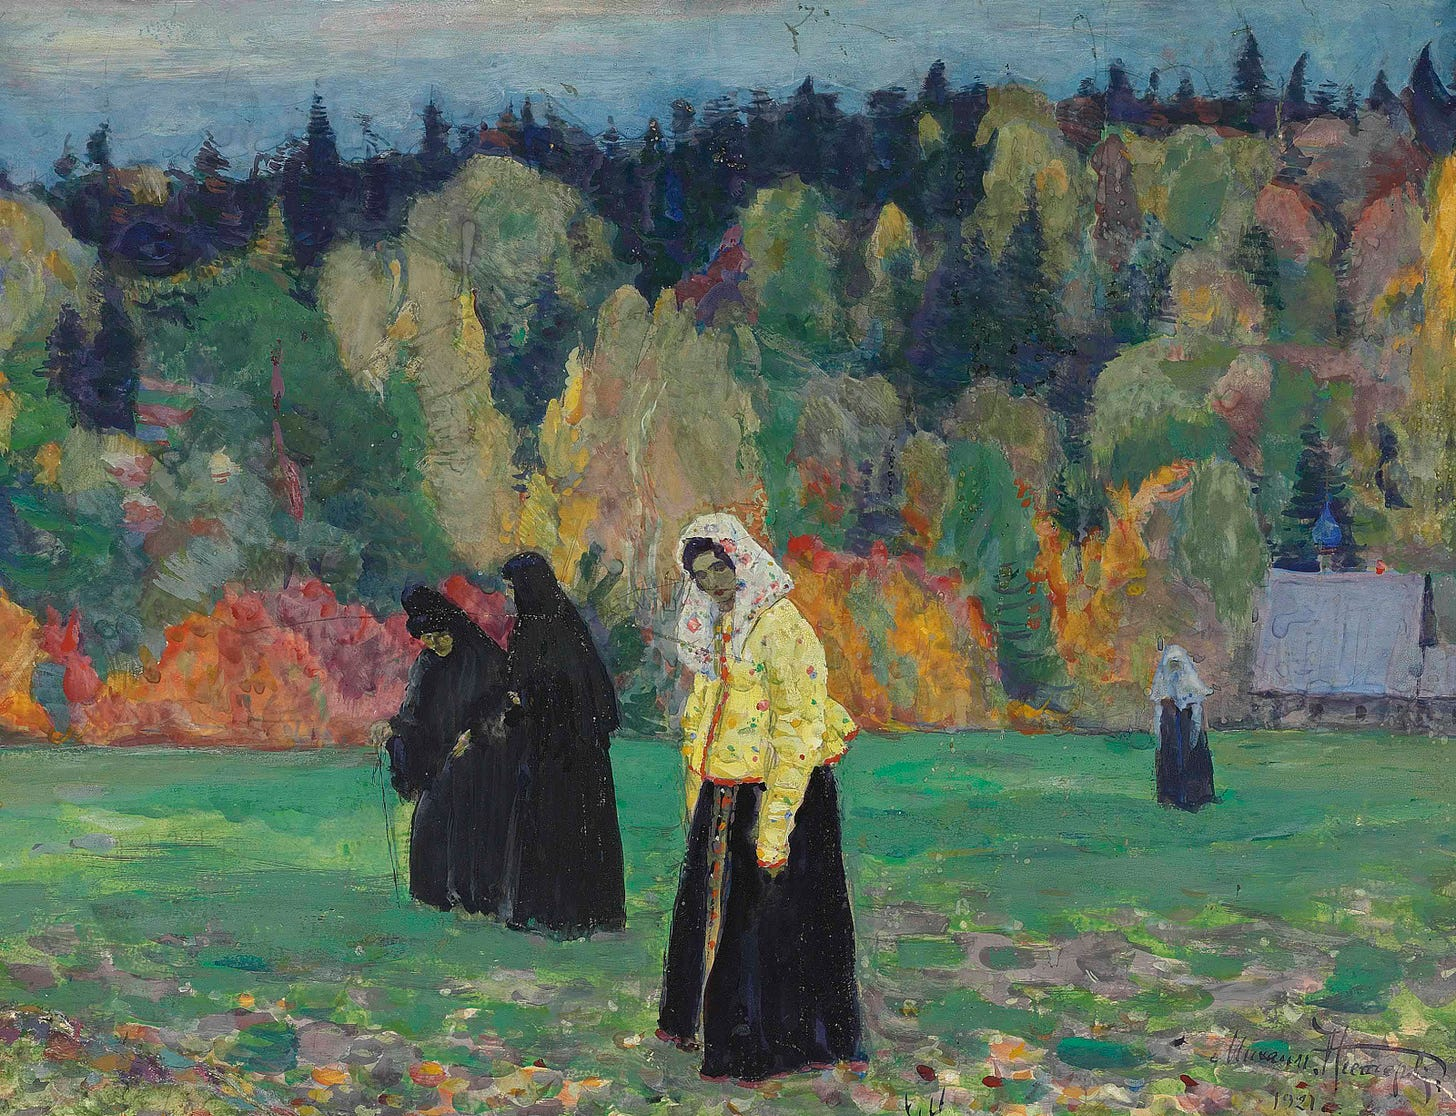 https://upload.wikimedia.org/wikipedia/commons/3/30/A_quiet_life_by_Nesterov_%281921%2C_Christie%27s%29.jpg